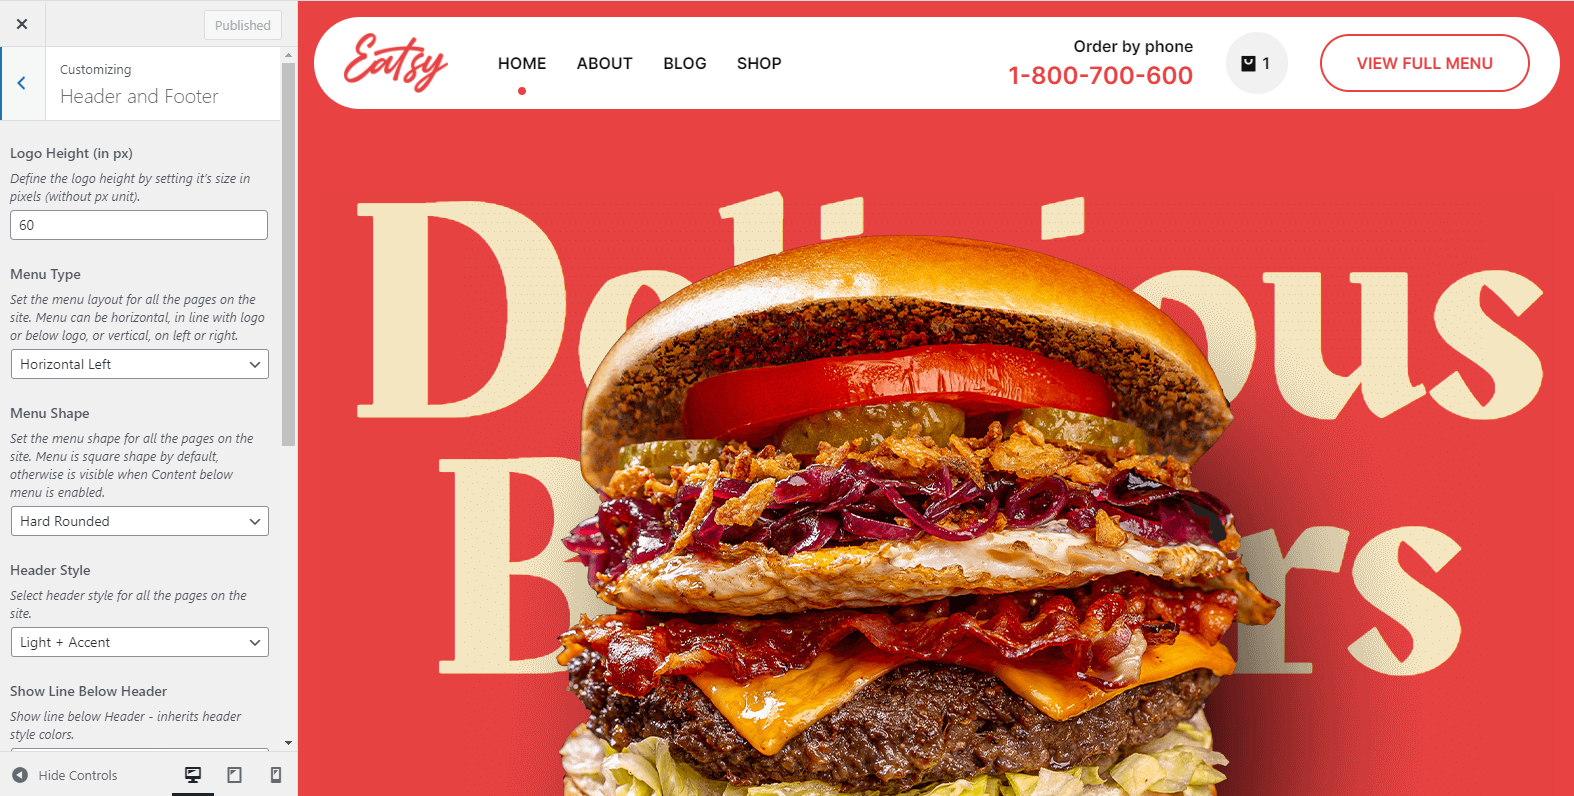 http://documentation.bold-themes.com/eatsy/wp-content/uploads/sites/64/2021/04/header-and-footer.png